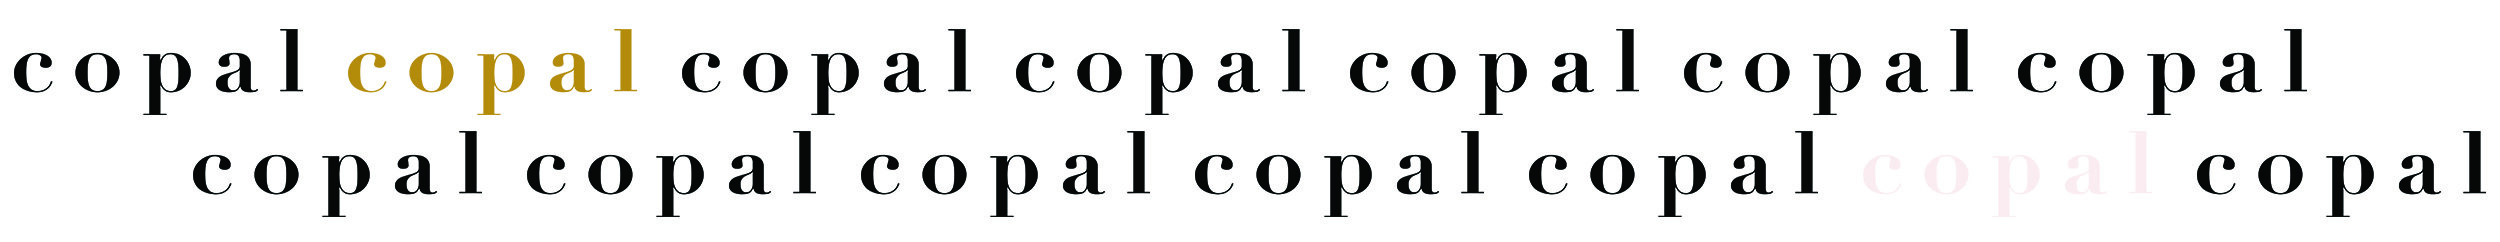 Copal Clean Beauty Logo Repeat